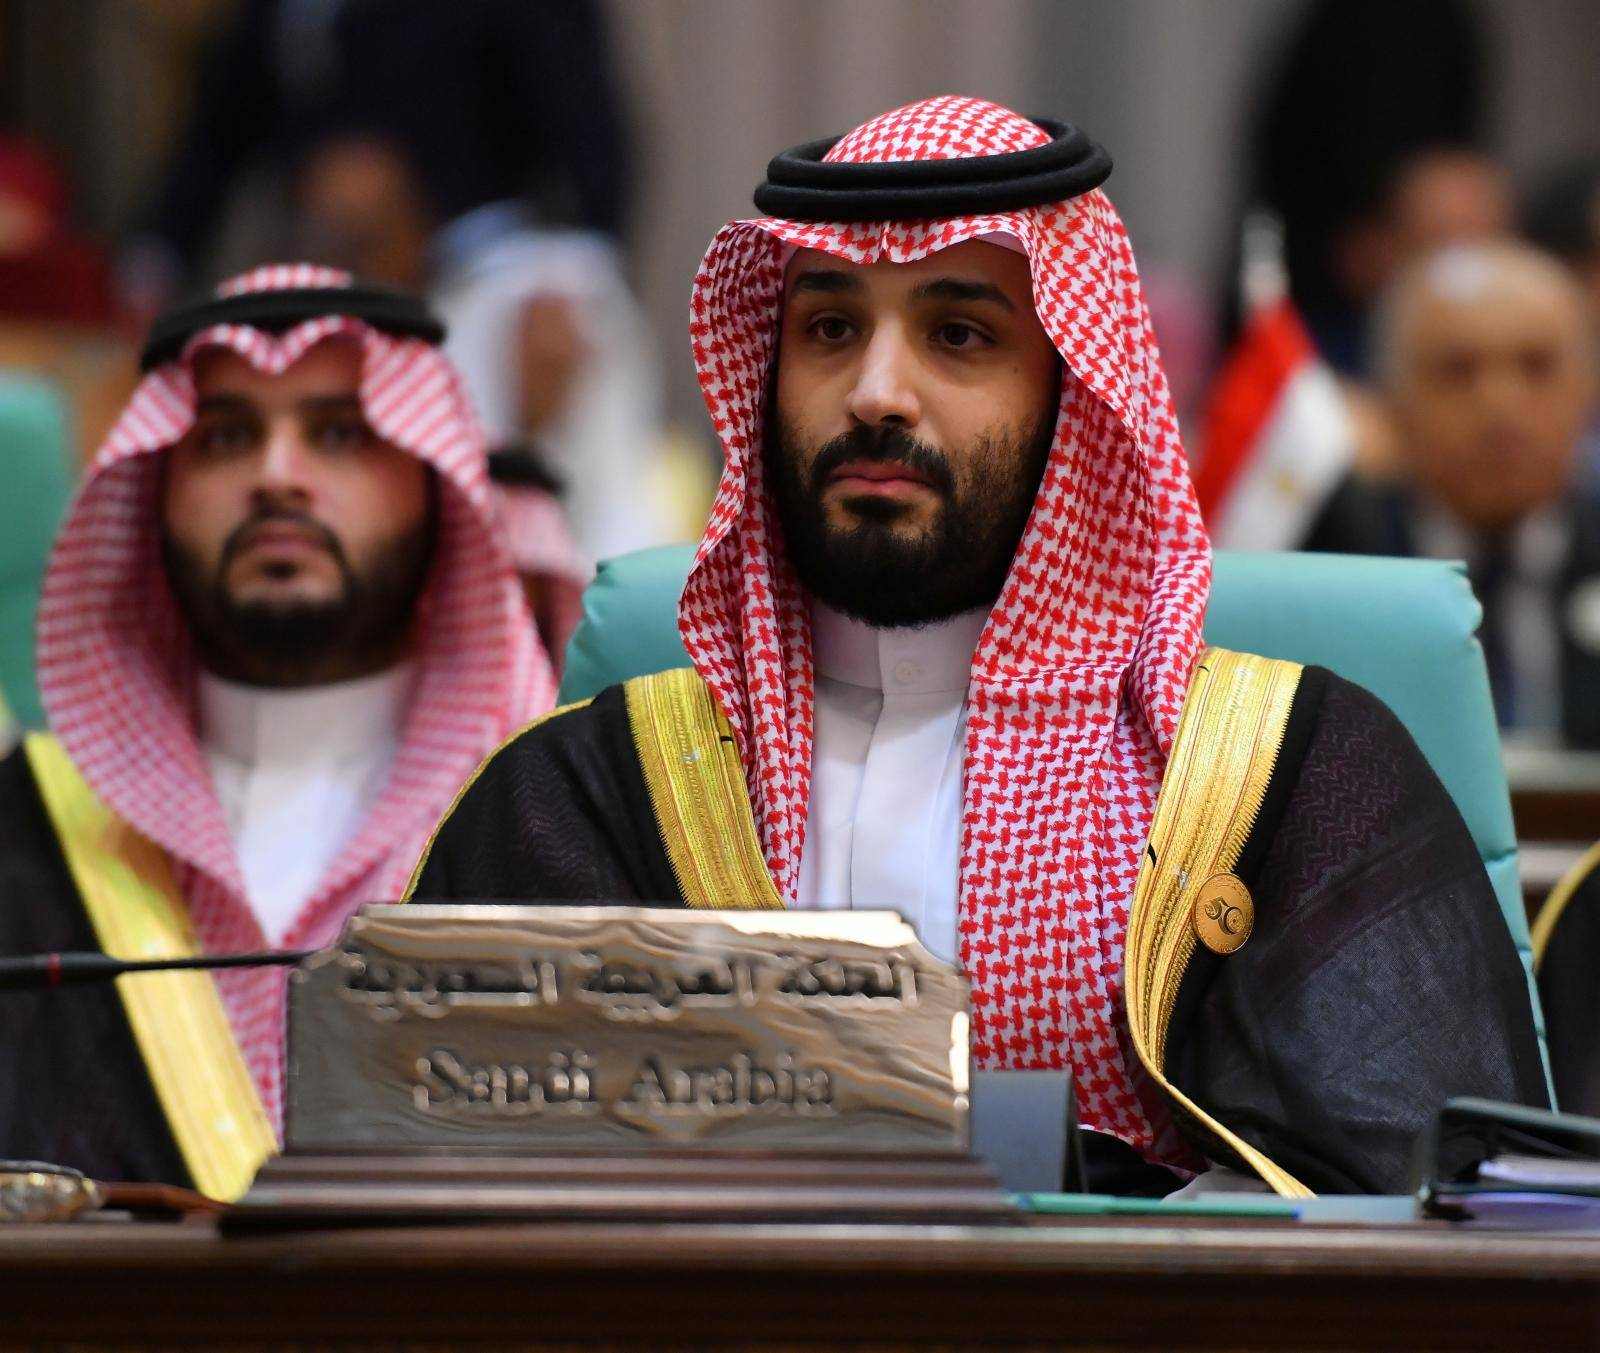 Crown Prince of Saudi Arabia Mohammad bin Salman attends the 14th Islamic summit of the Organisation of Islamic Cooperation (OIC) in Mecca